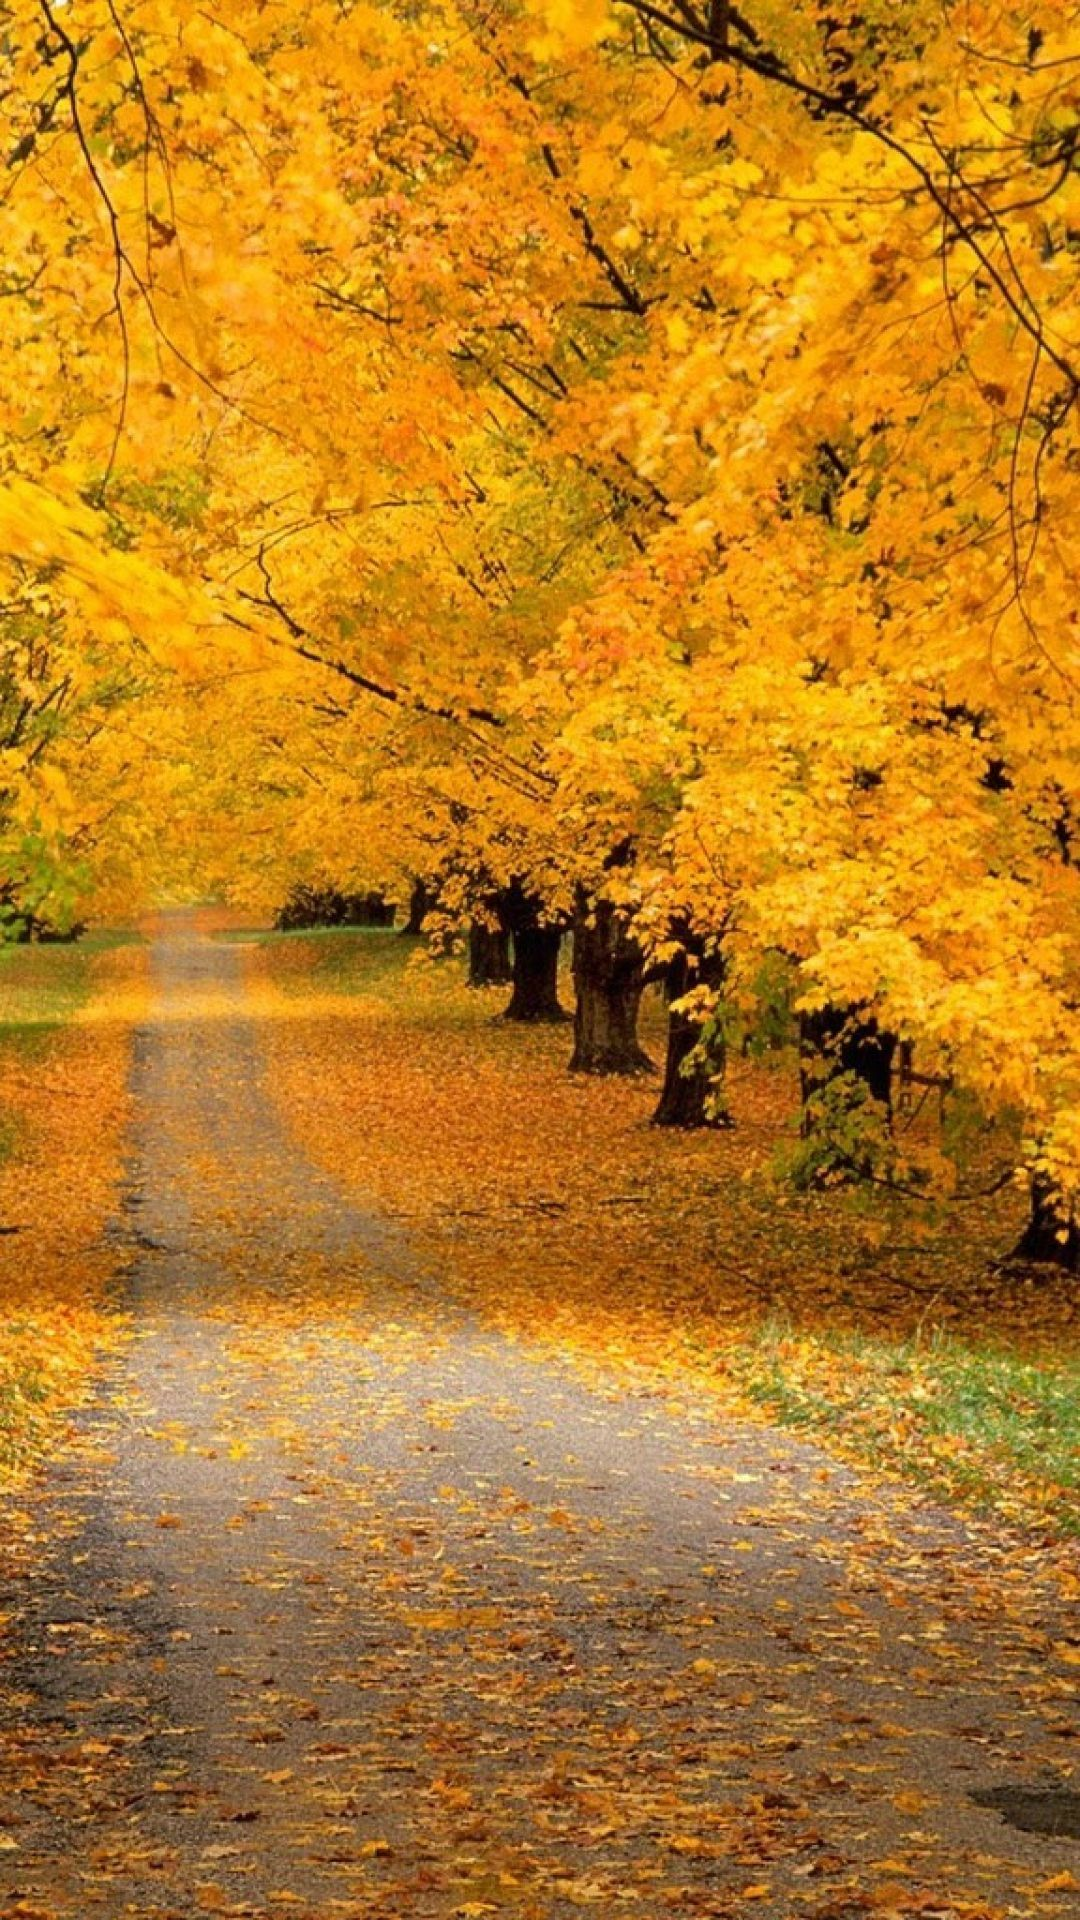 Trees Park Autumn Leaves Yellow Track Fall Pictures Beautiful Nature Autumn Scenes